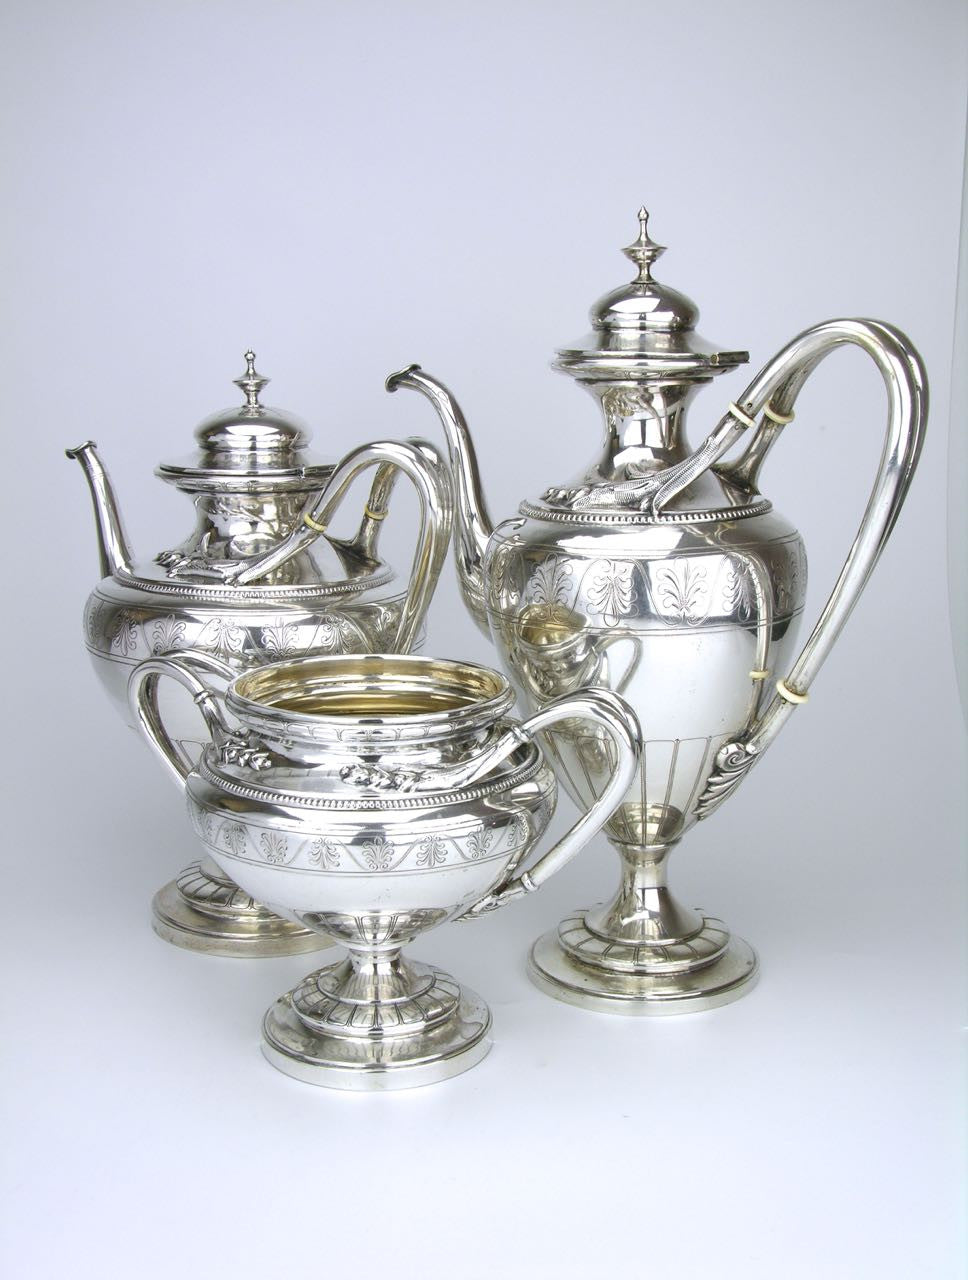 Neoclassical Revival Continental Silver Tea and Coffee Service